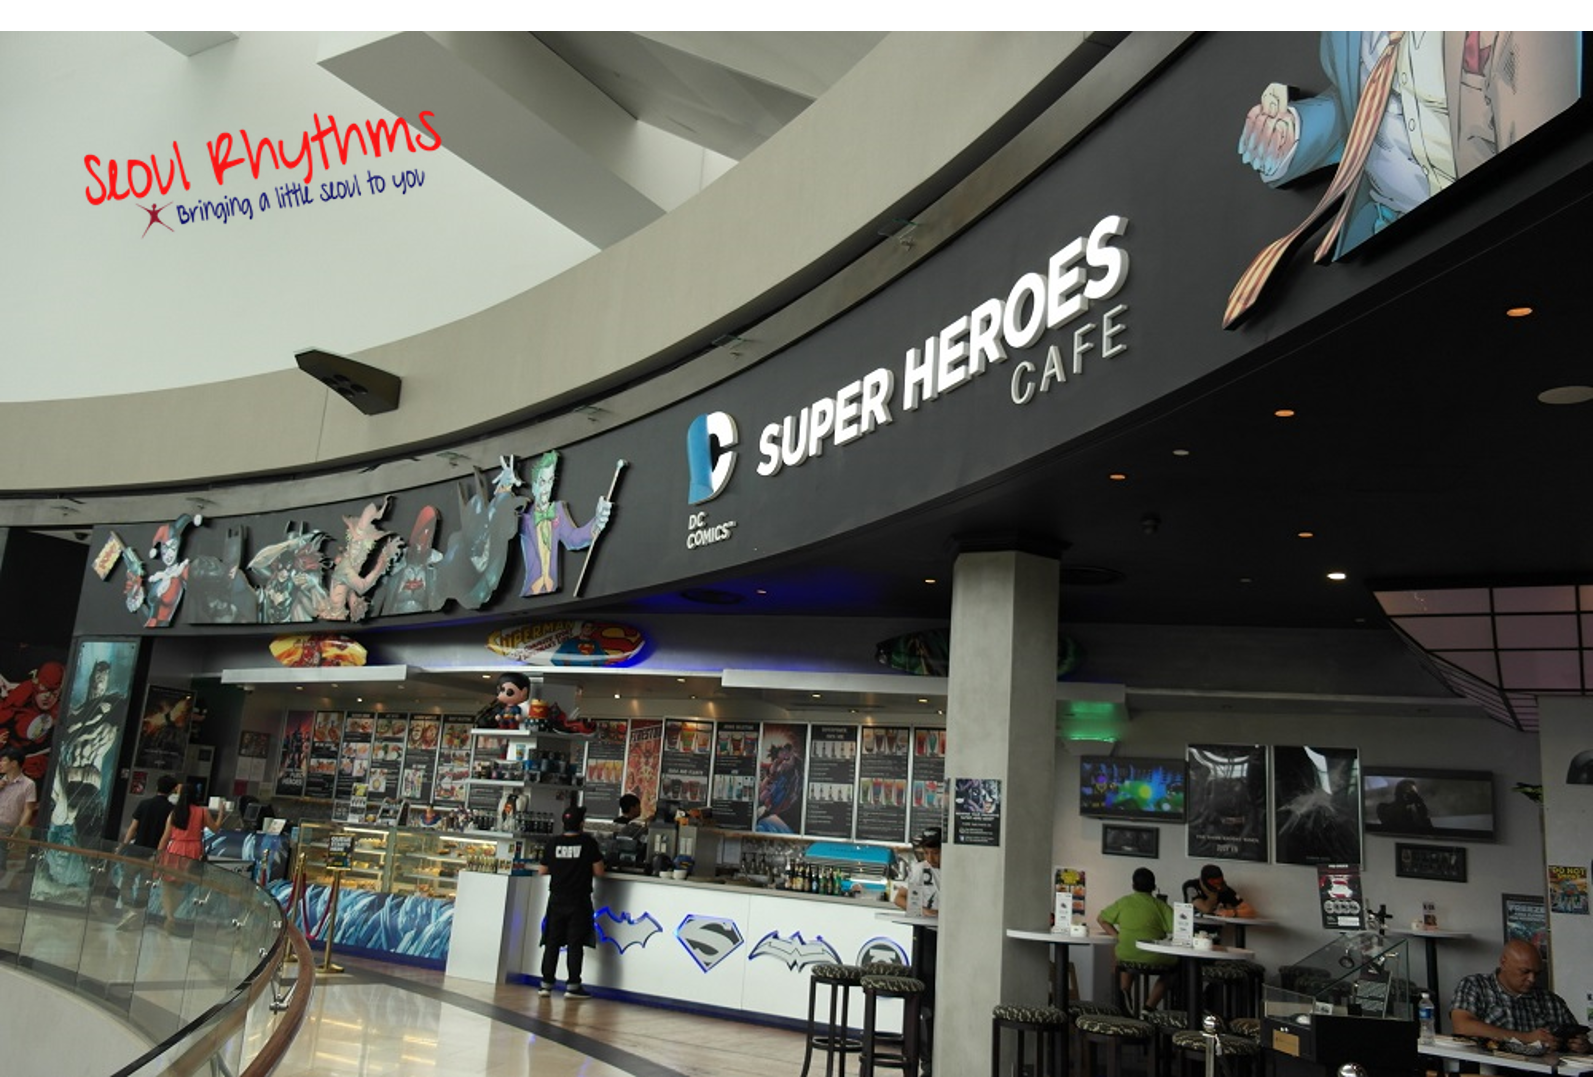 DC Comics Super Heroes Cafe 9